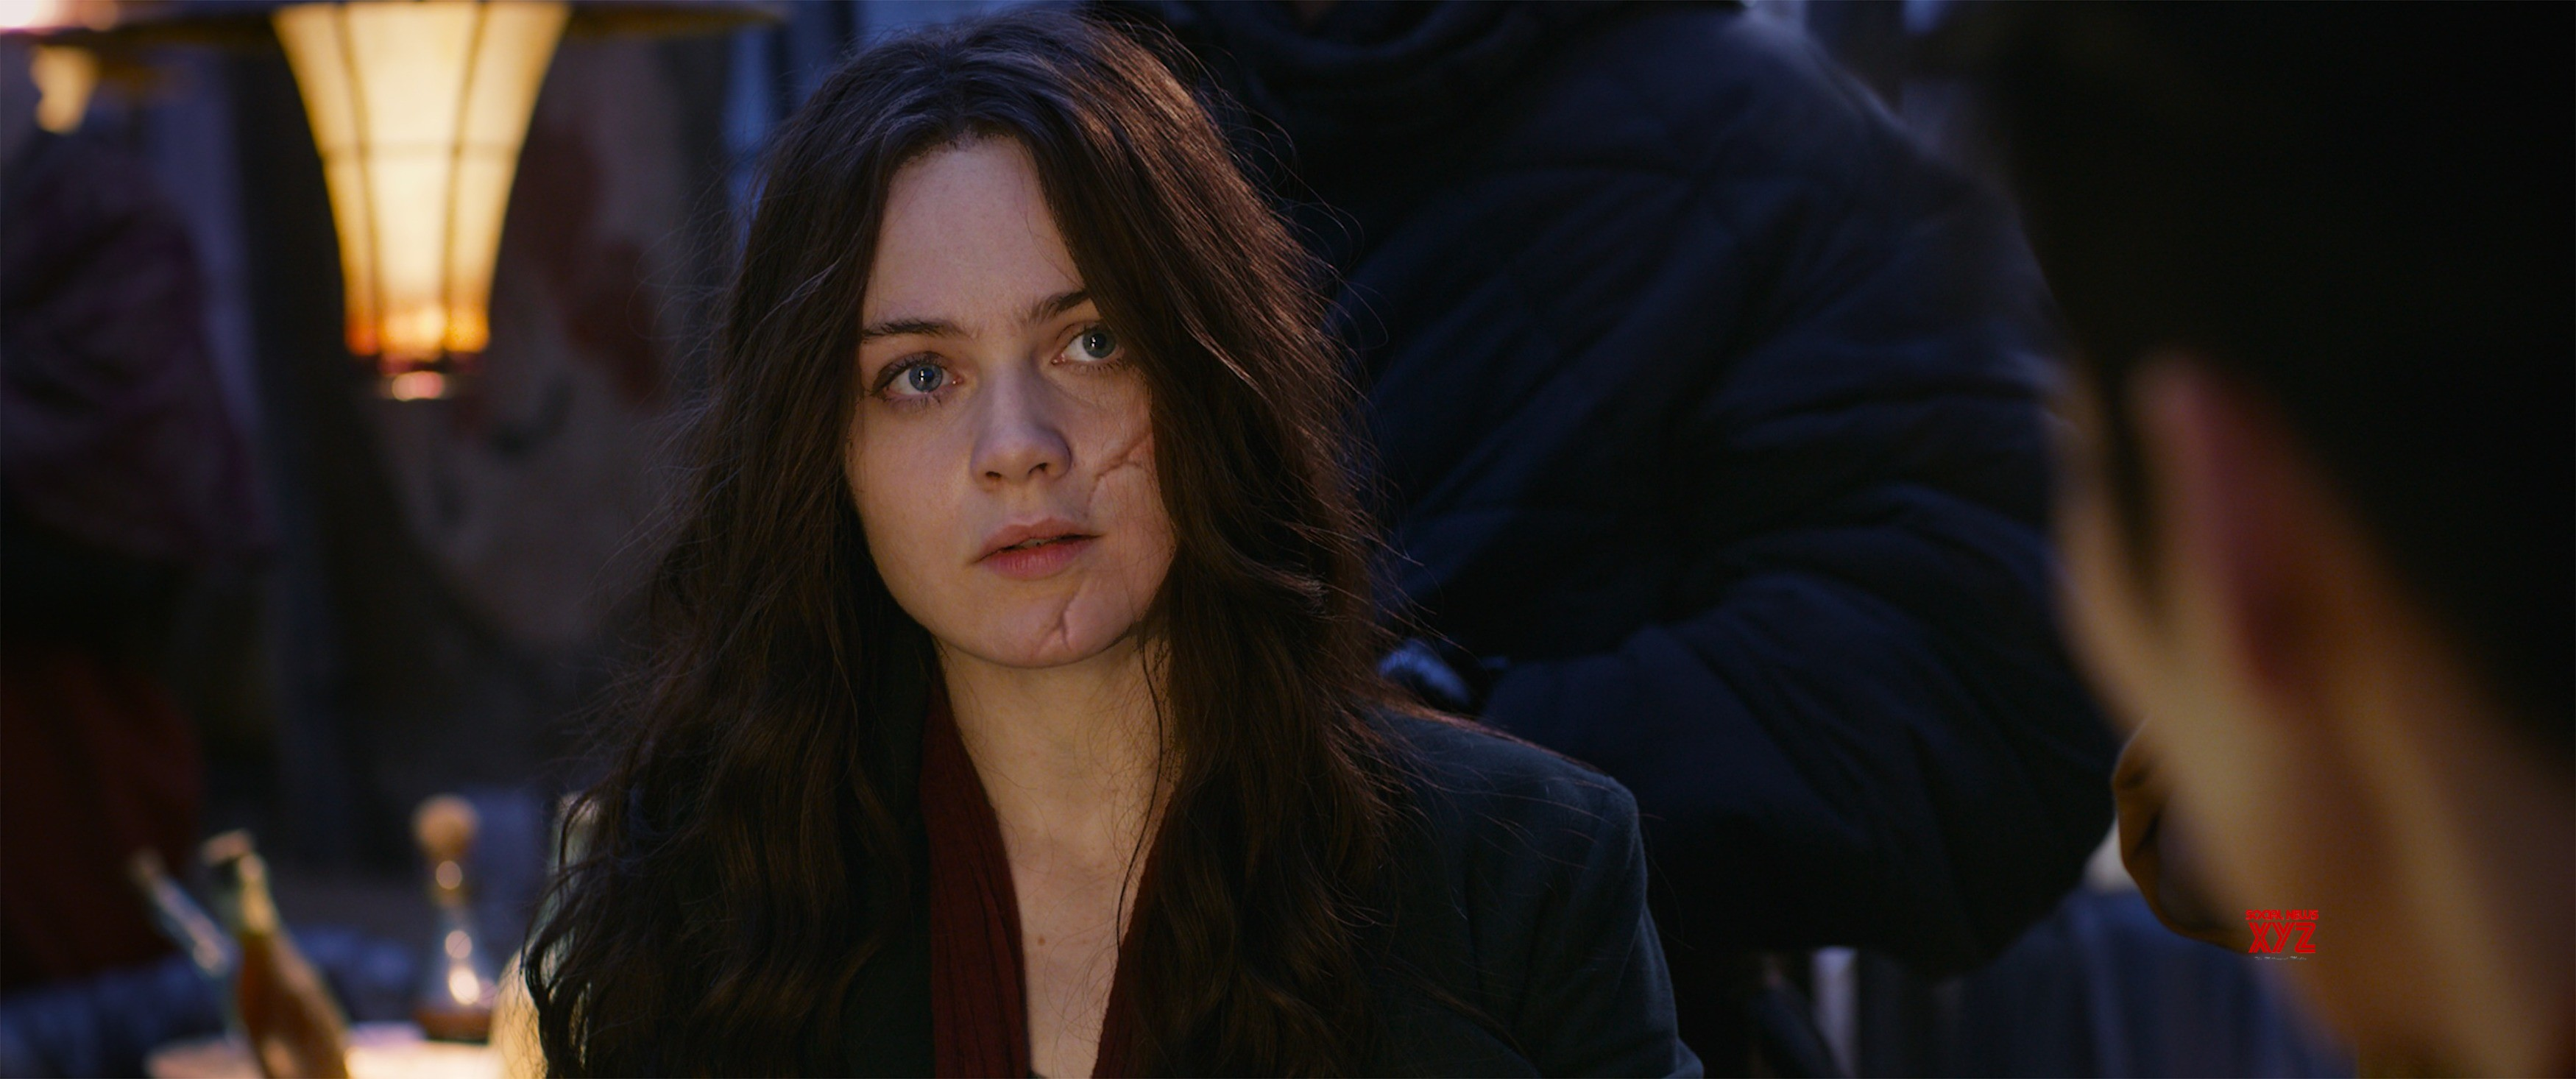 Mortal Engines Review: Action packed and engrossing drama (Rating: ****)